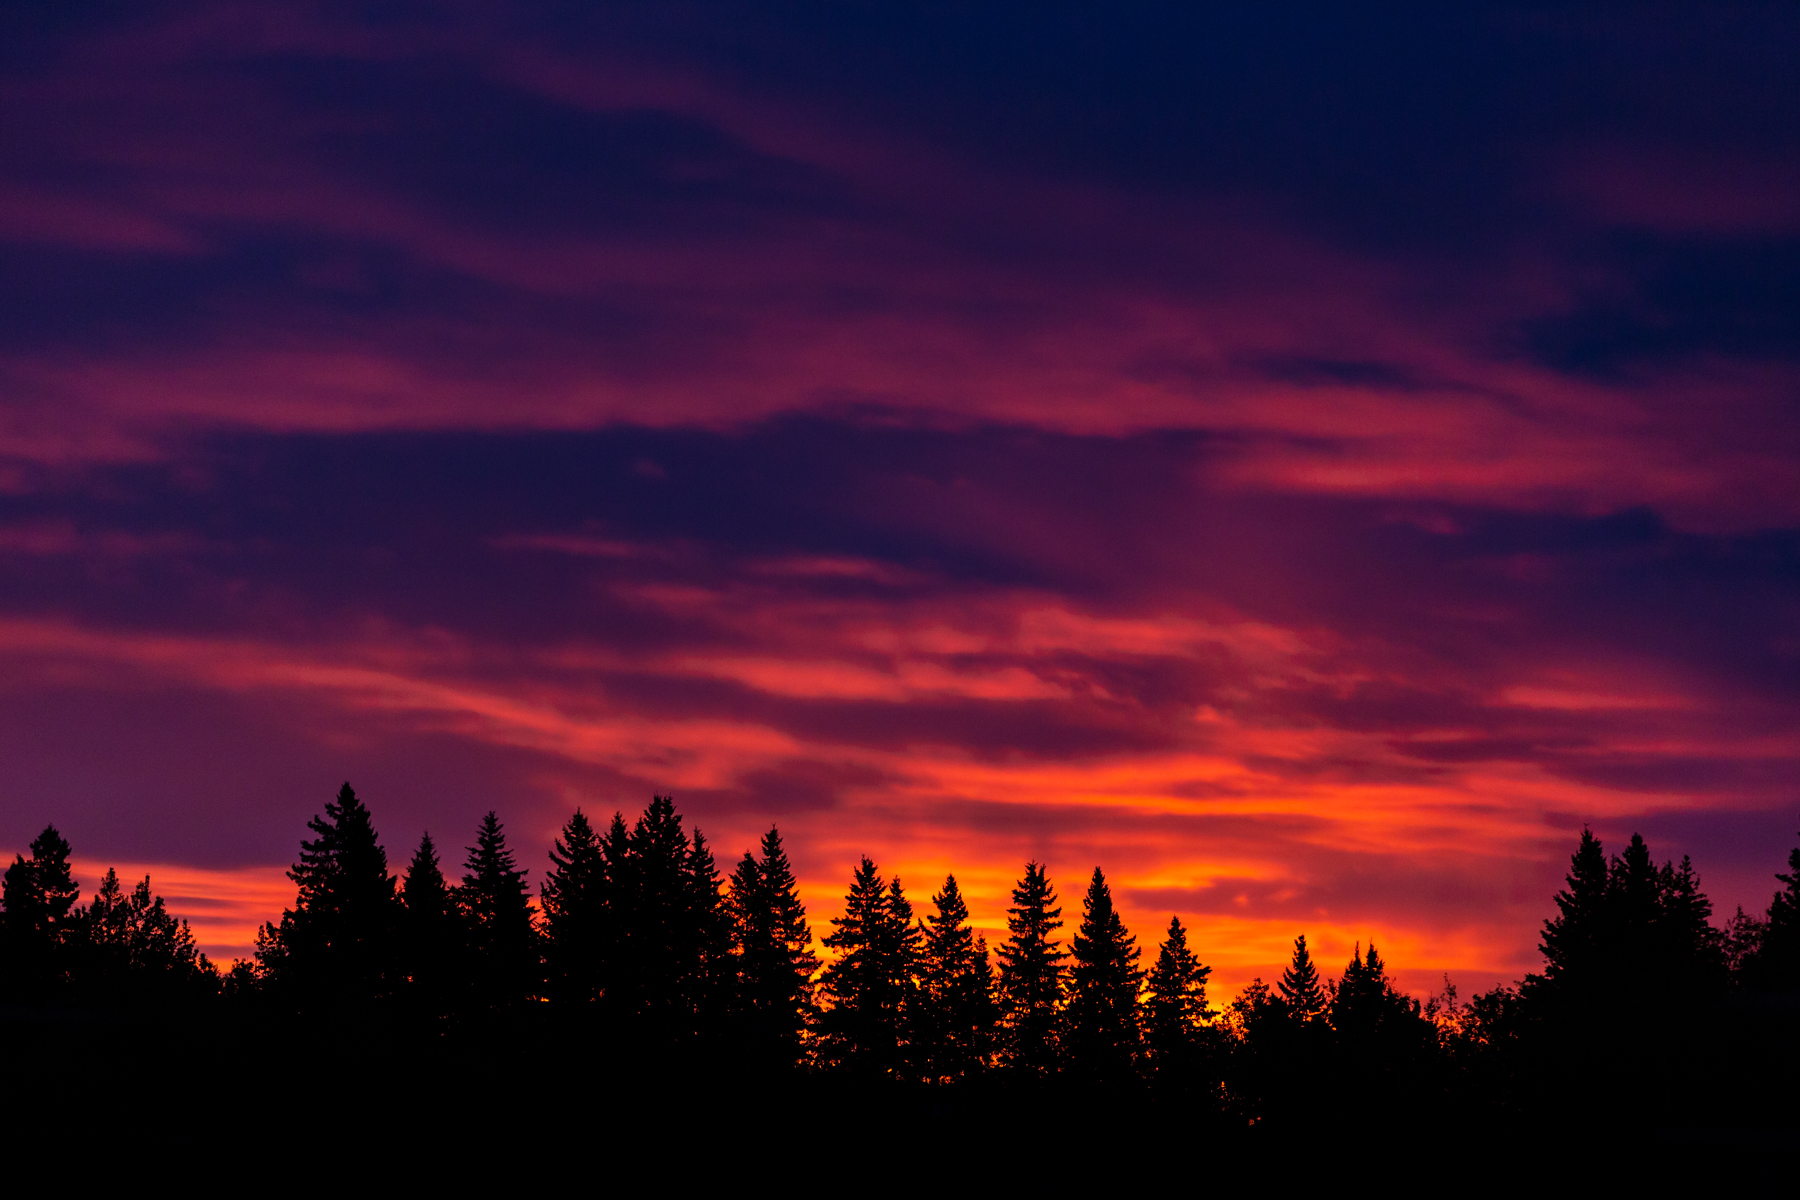 bright, vivid sunrise with silhouette of evergreen trees